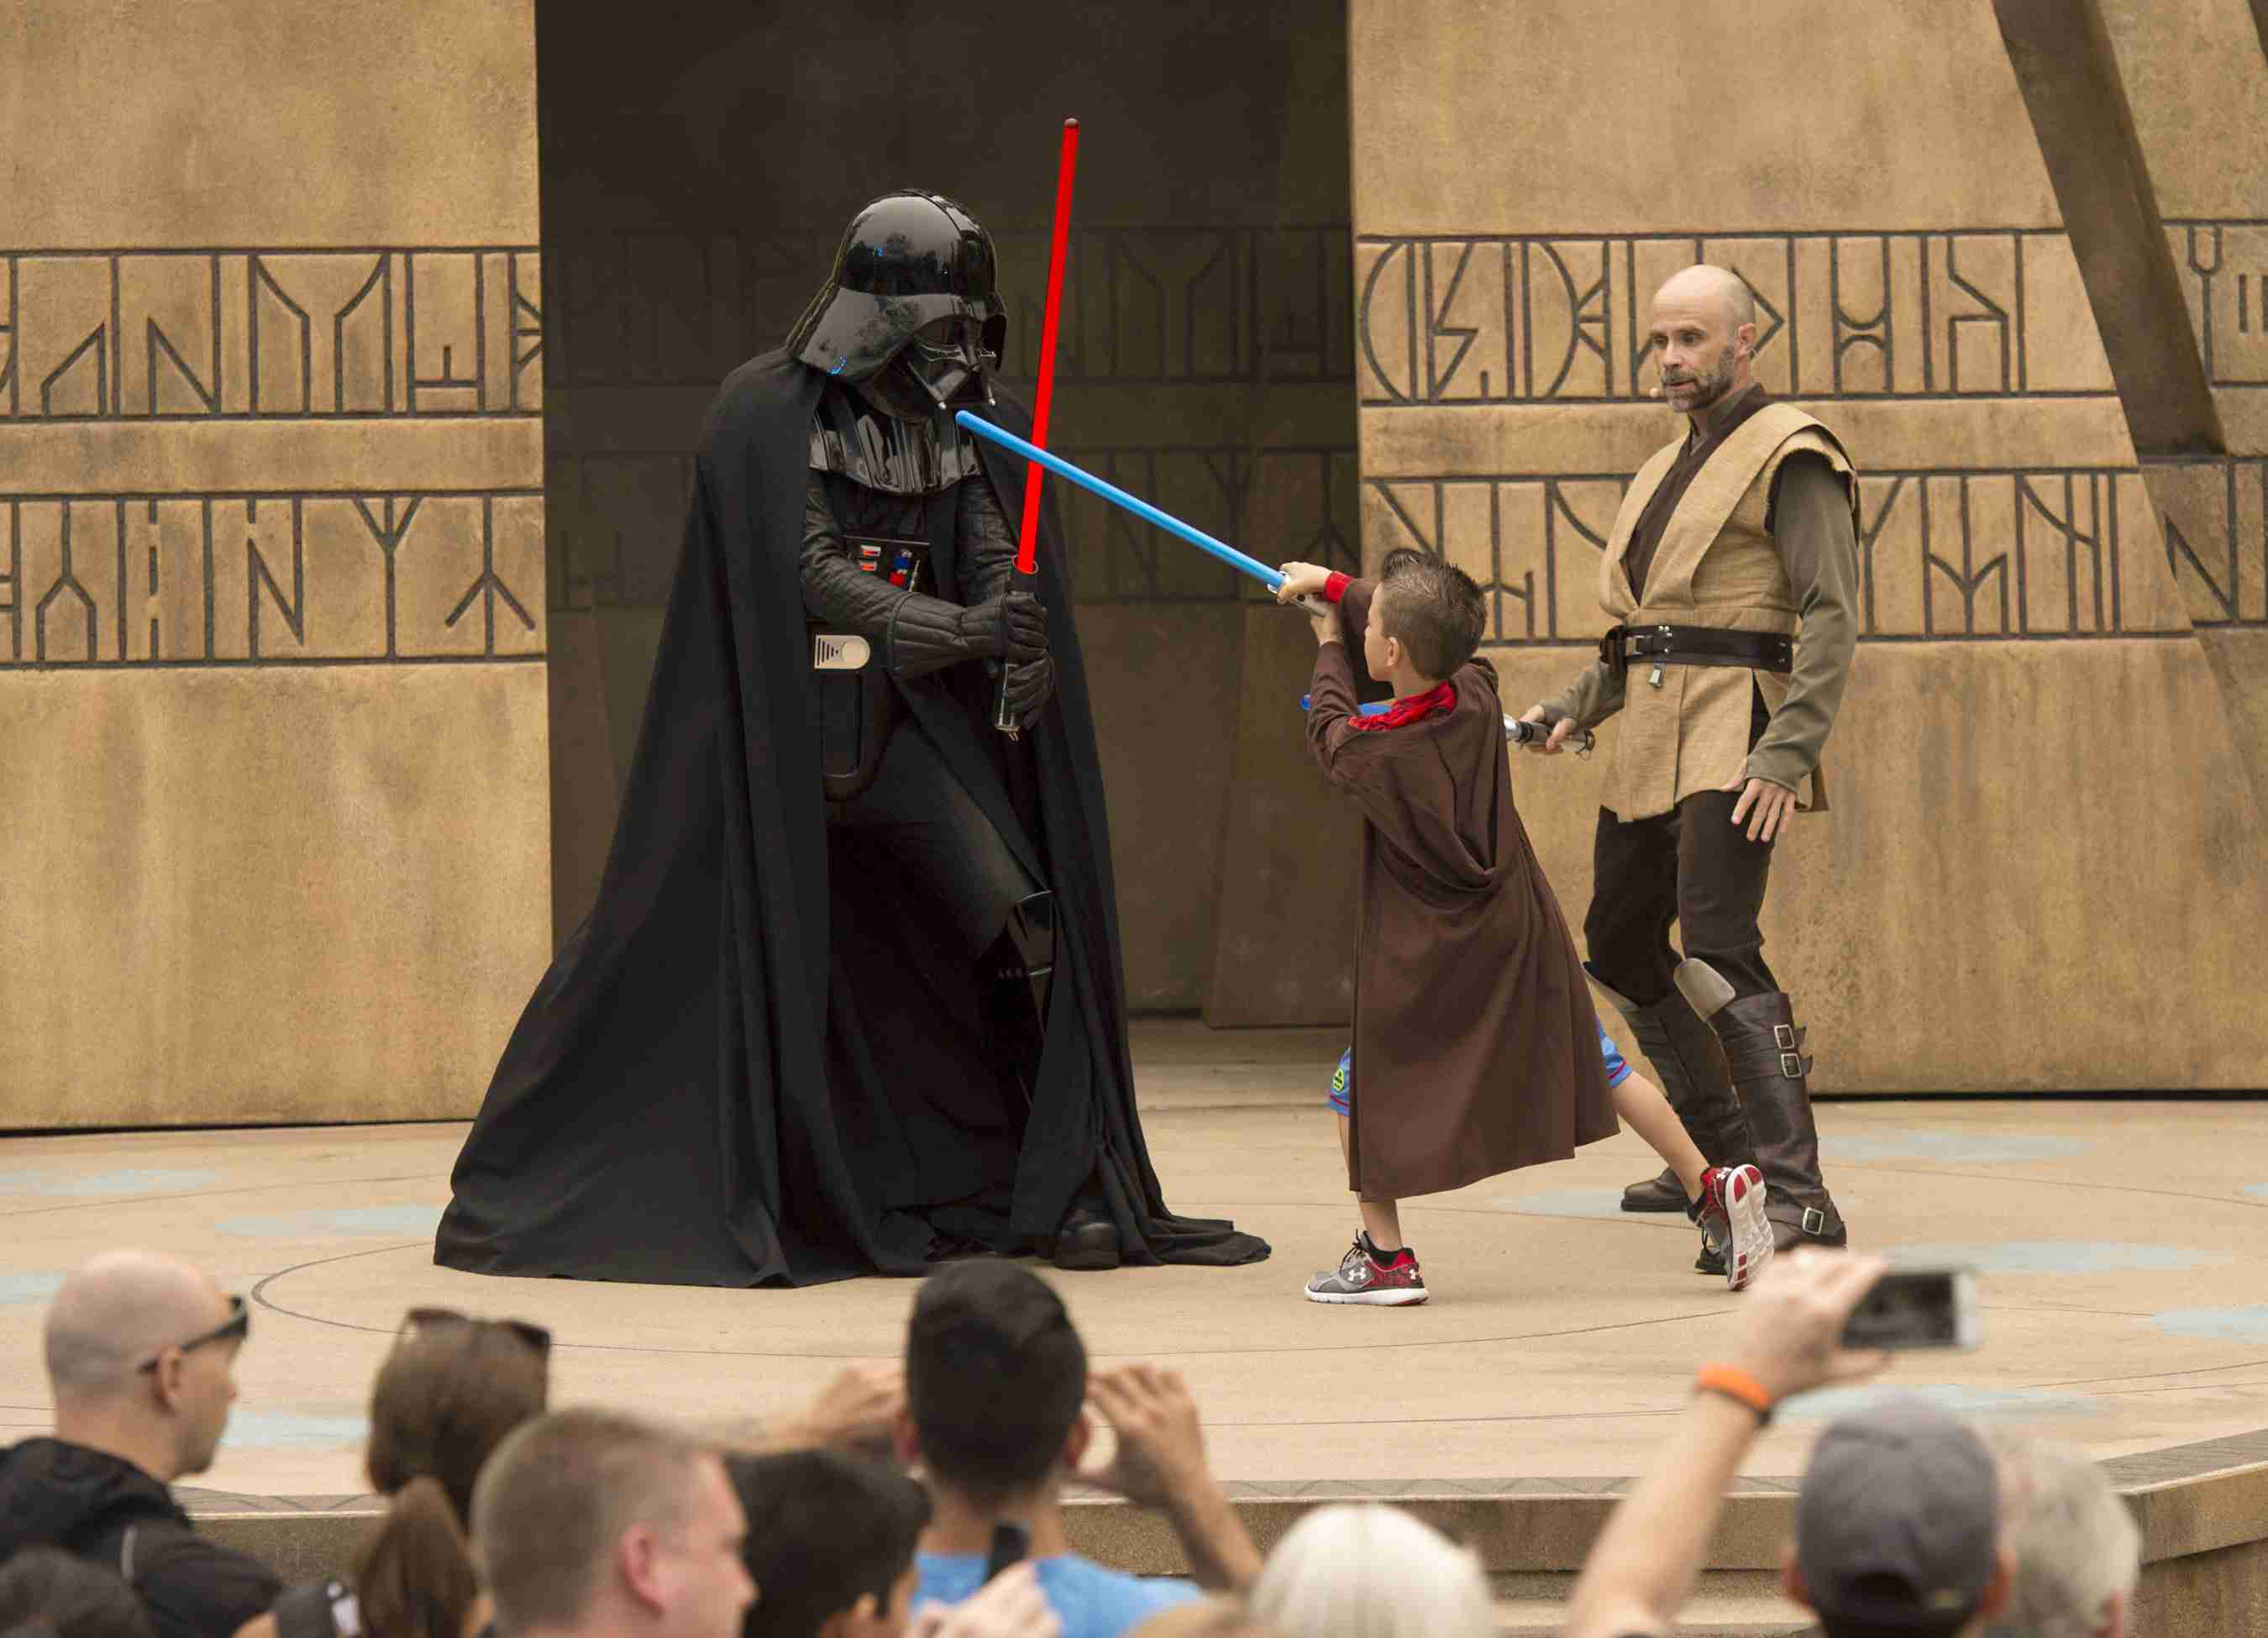 A Jedi-in-training sparring with Darth Vader